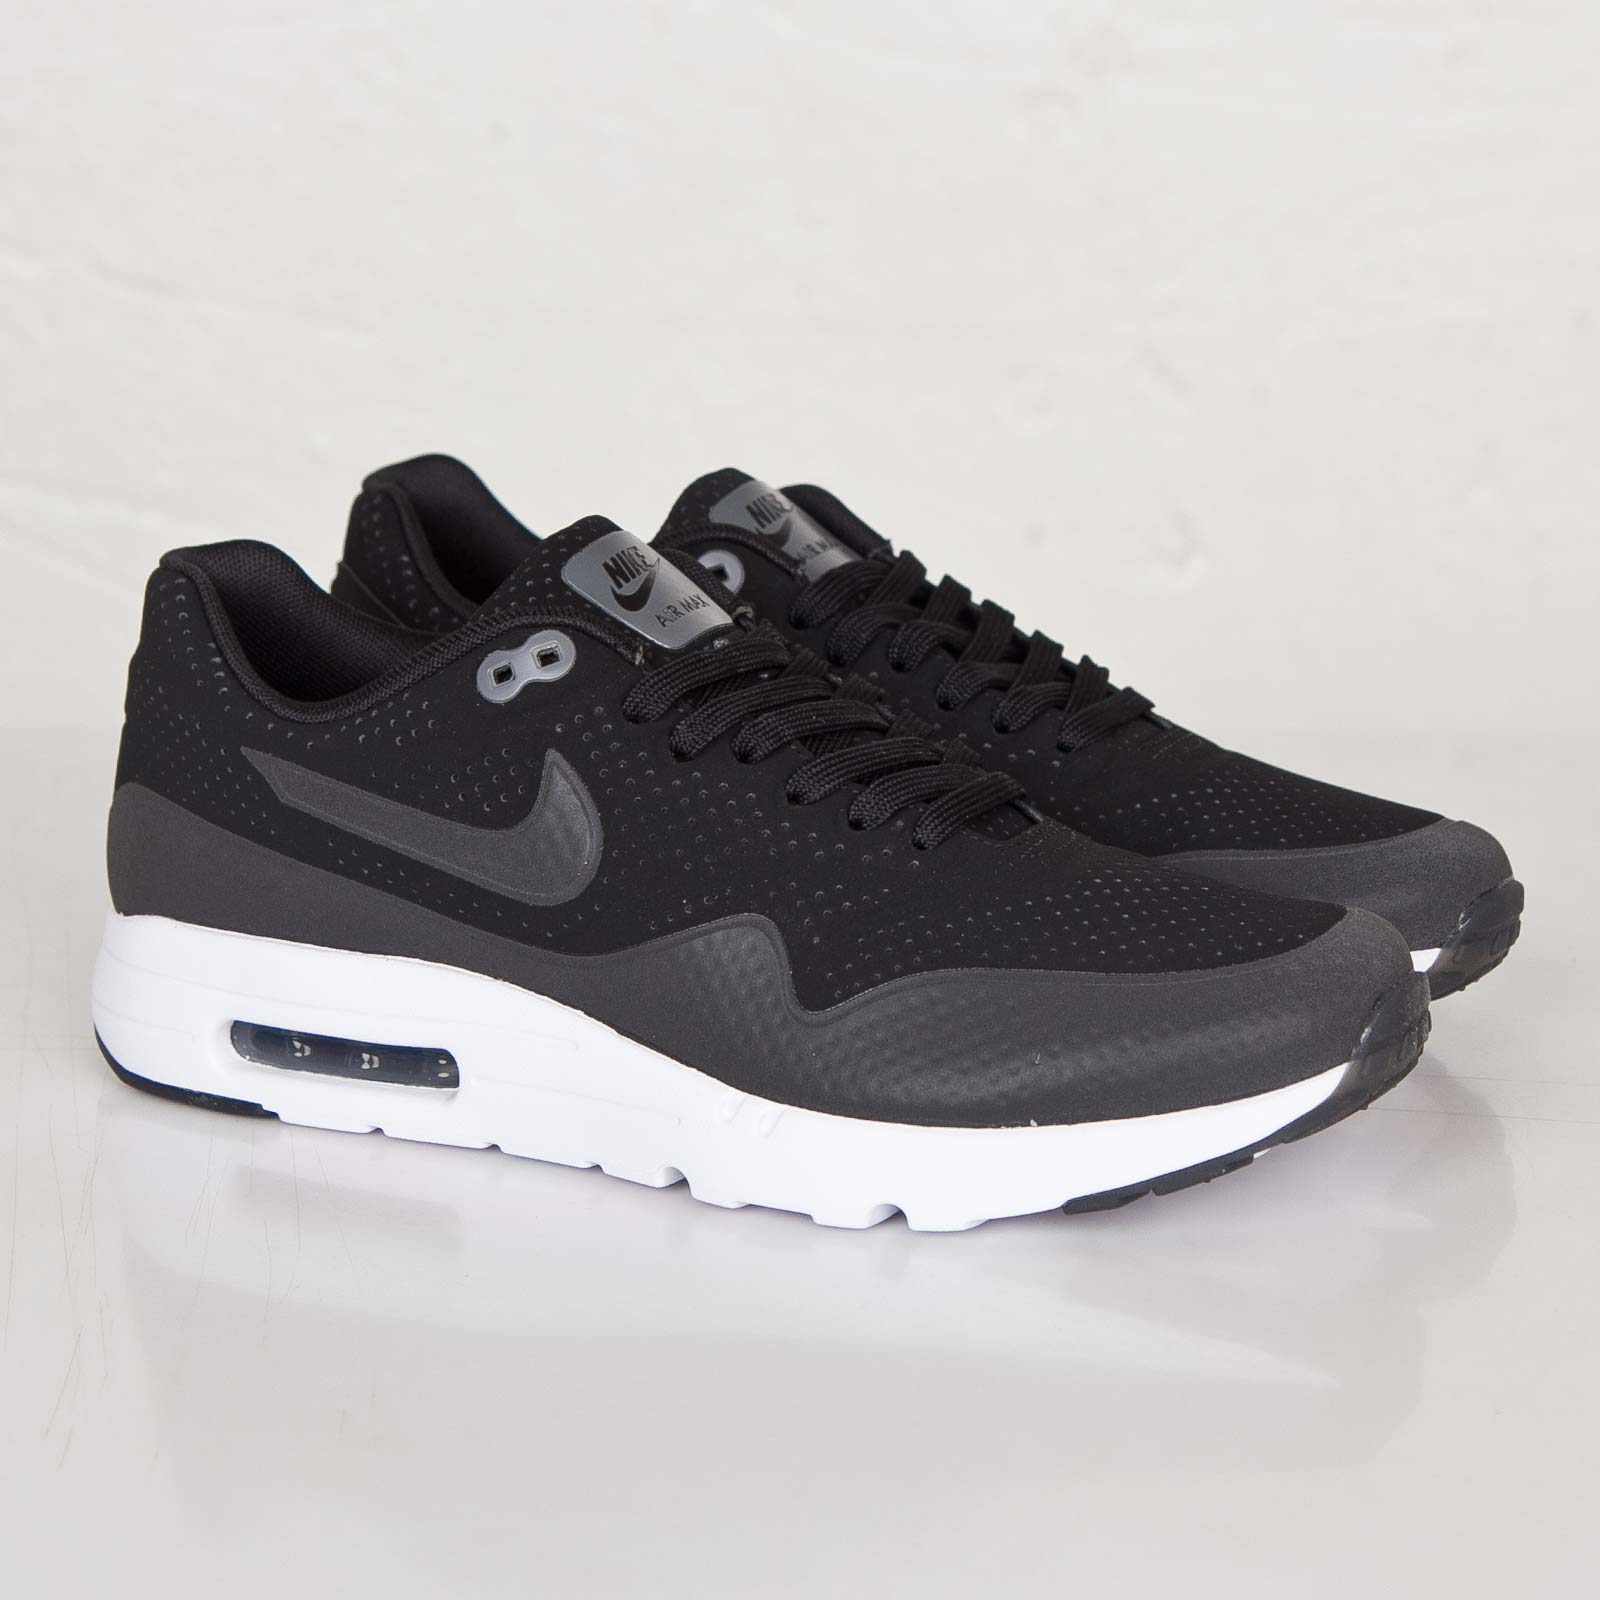 nike air max ultra moire online